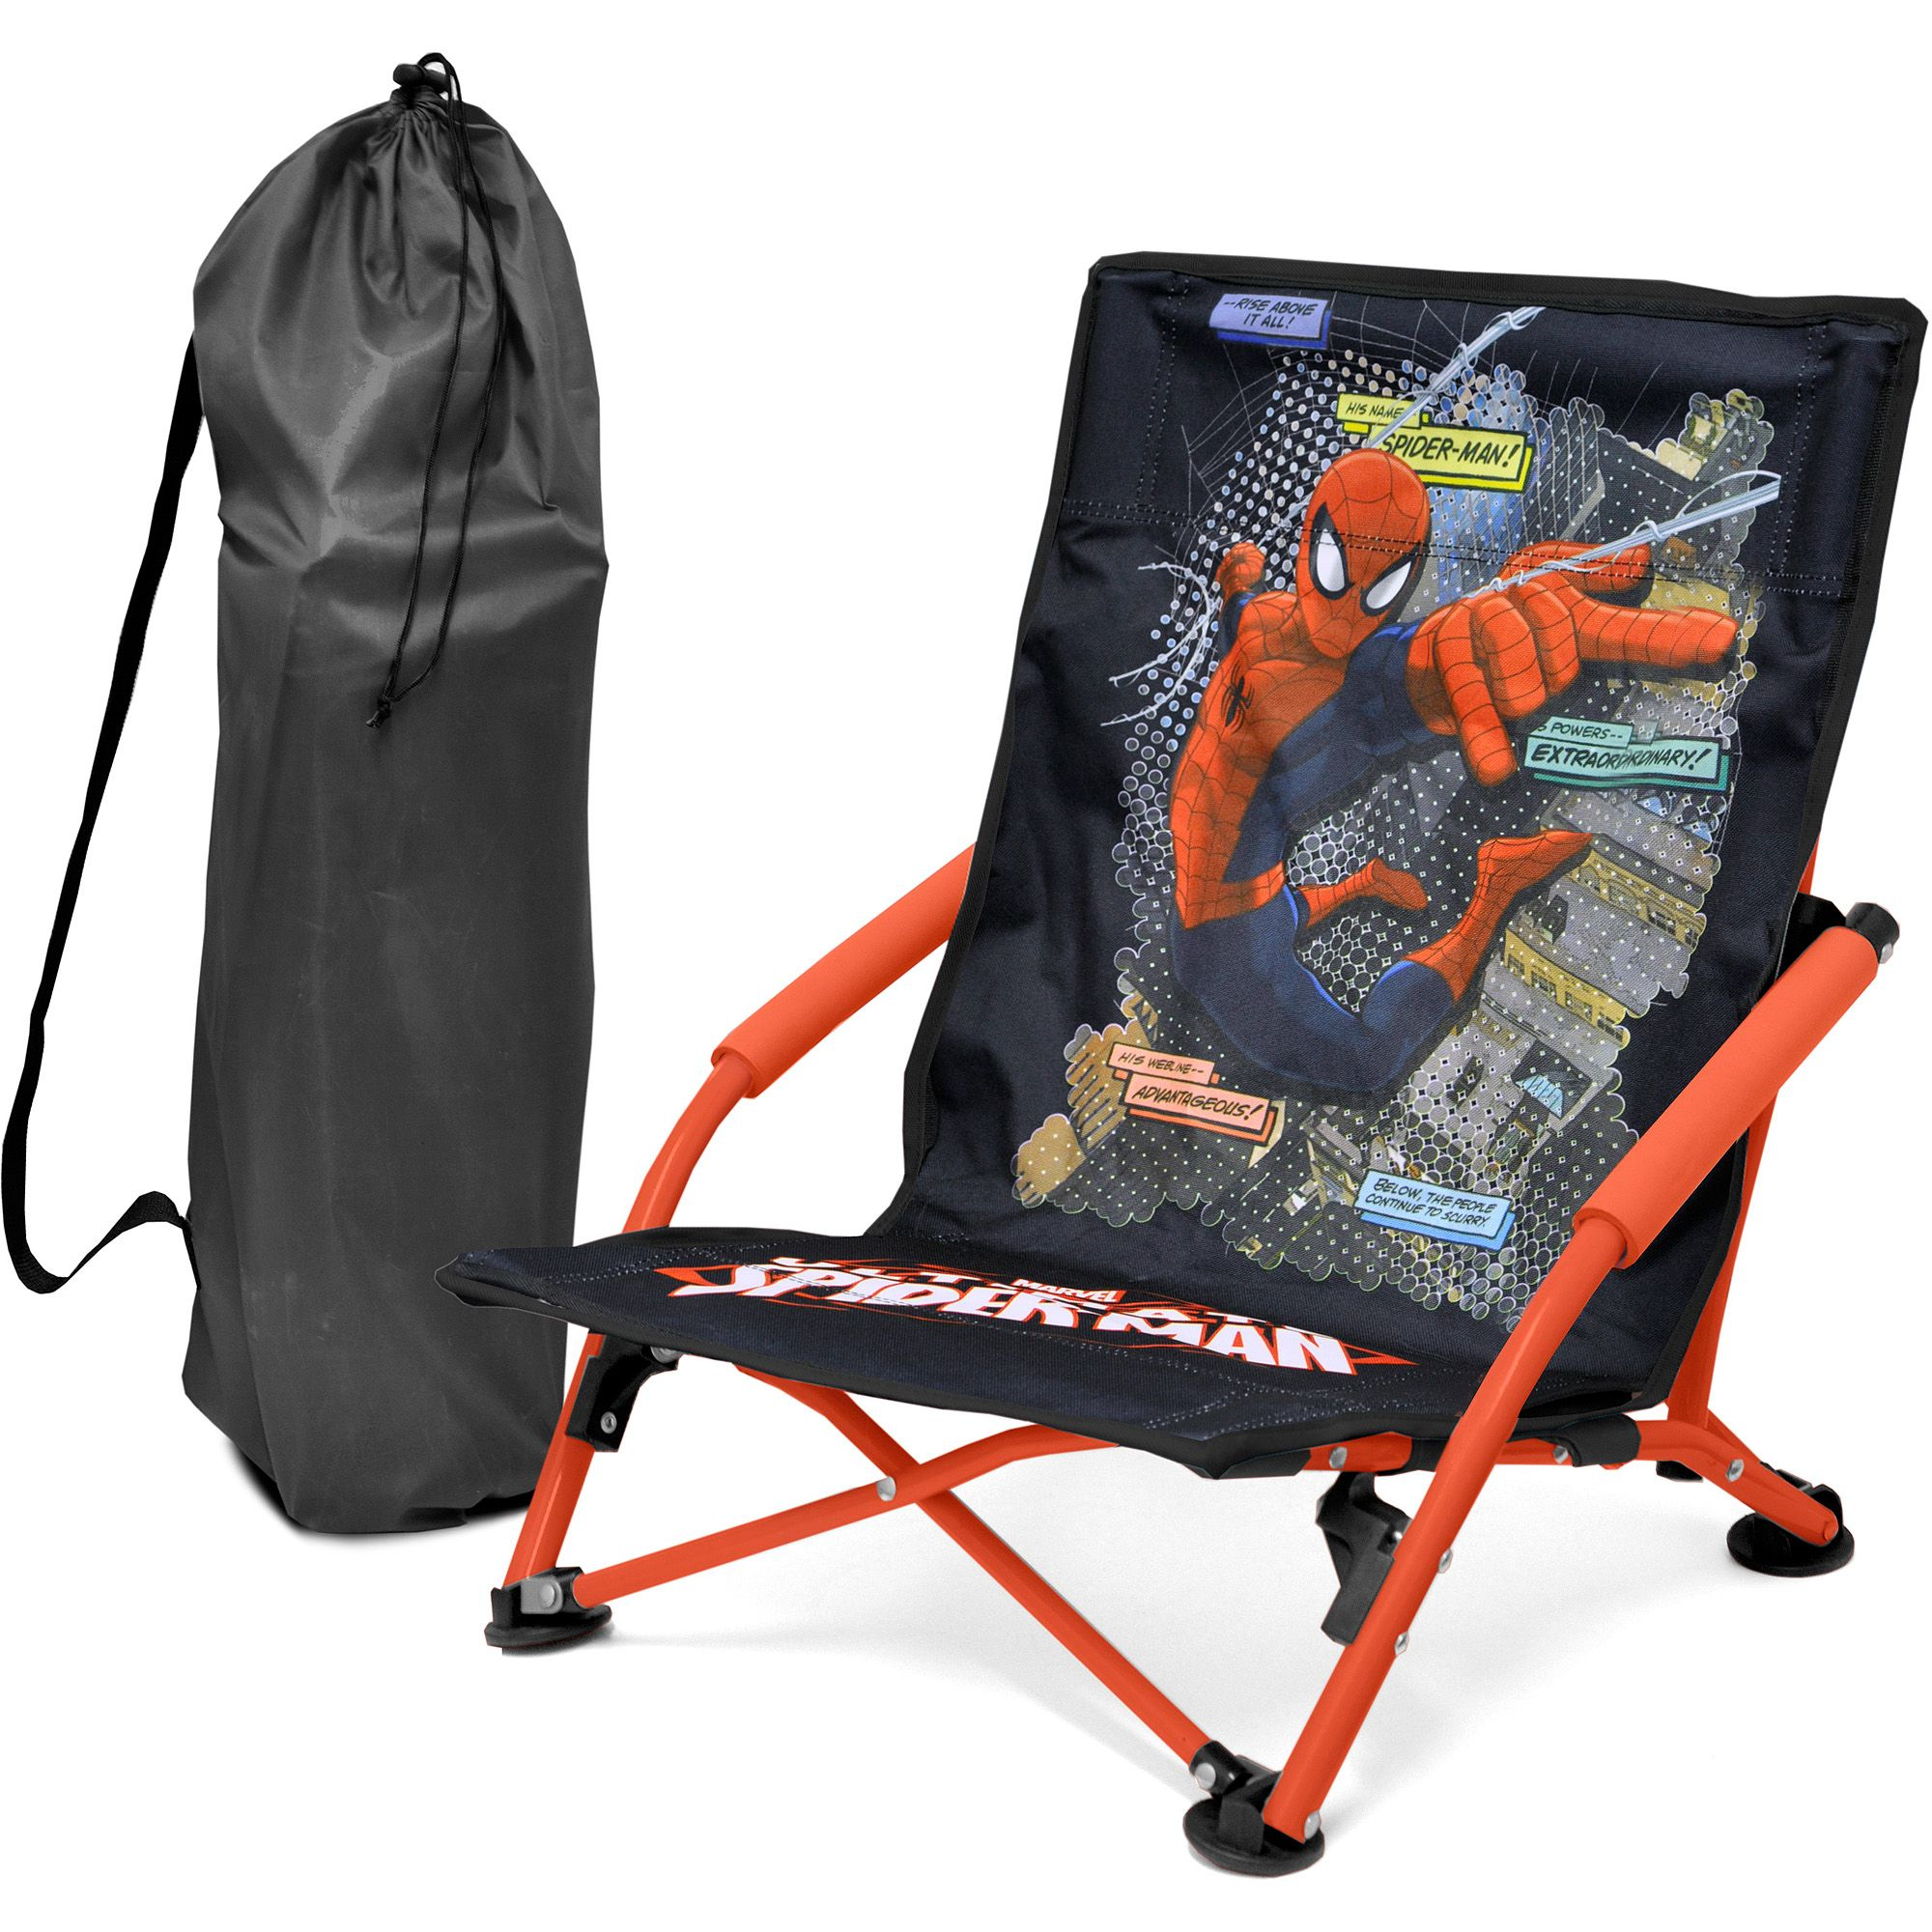 SpiderMan Folding Lounge Chair, Red